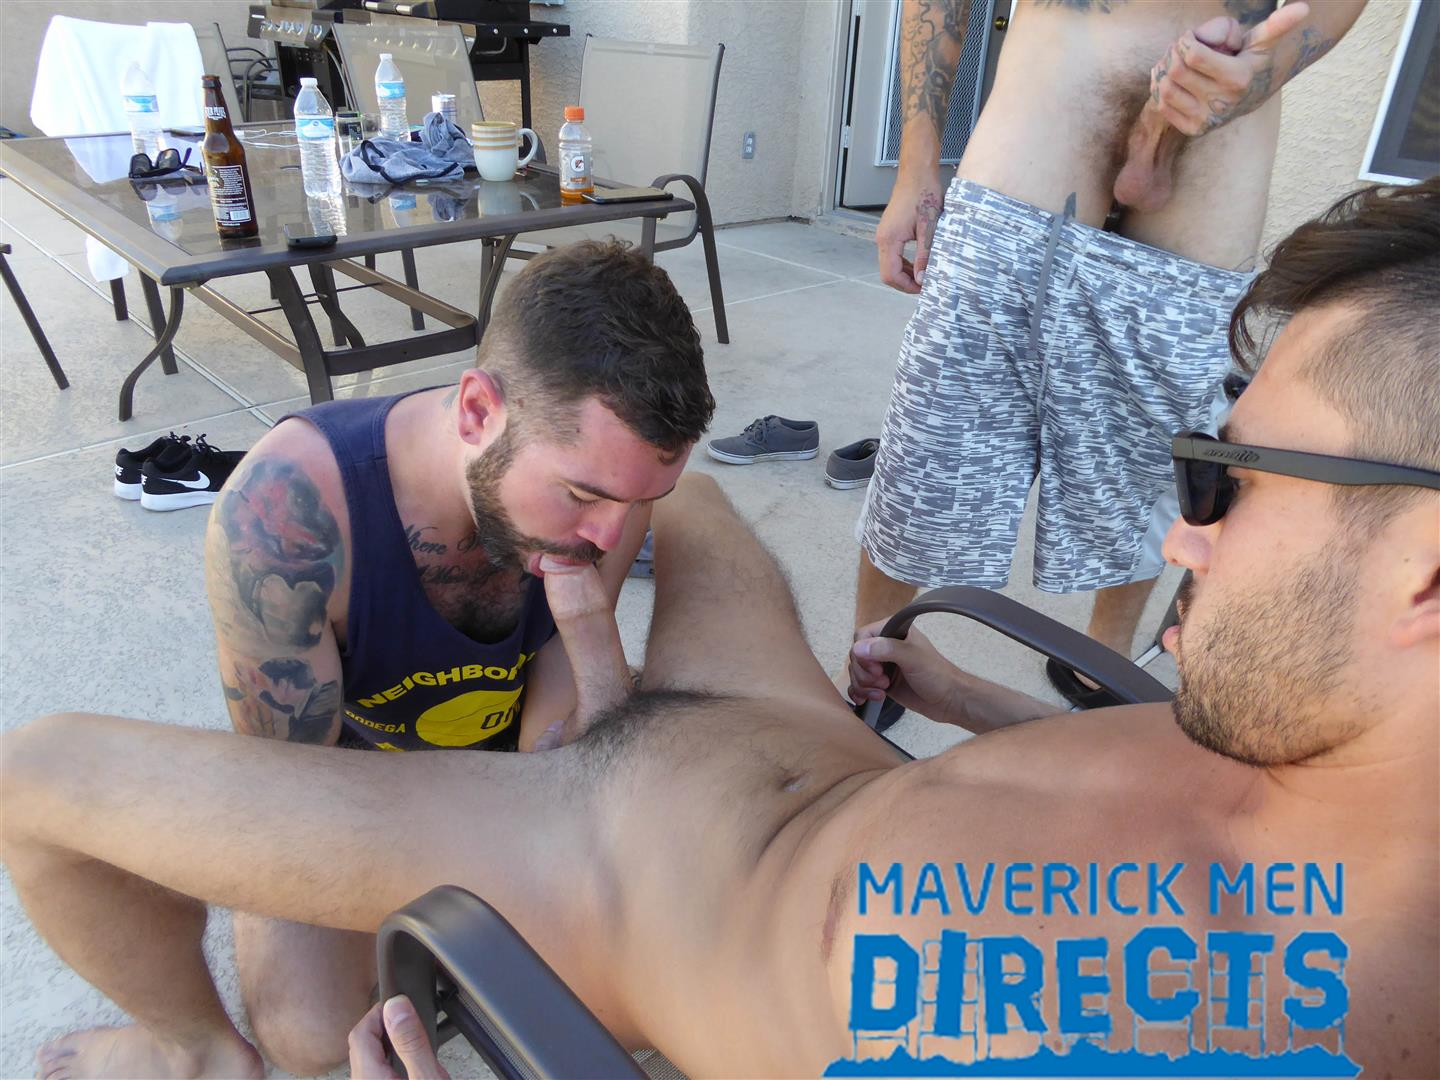 Maverick-Men-Directs-Real-Guys-Having-Bareback-Sex-Free-Video-03 Spit On That Hairy Hole And Bareback That Ass